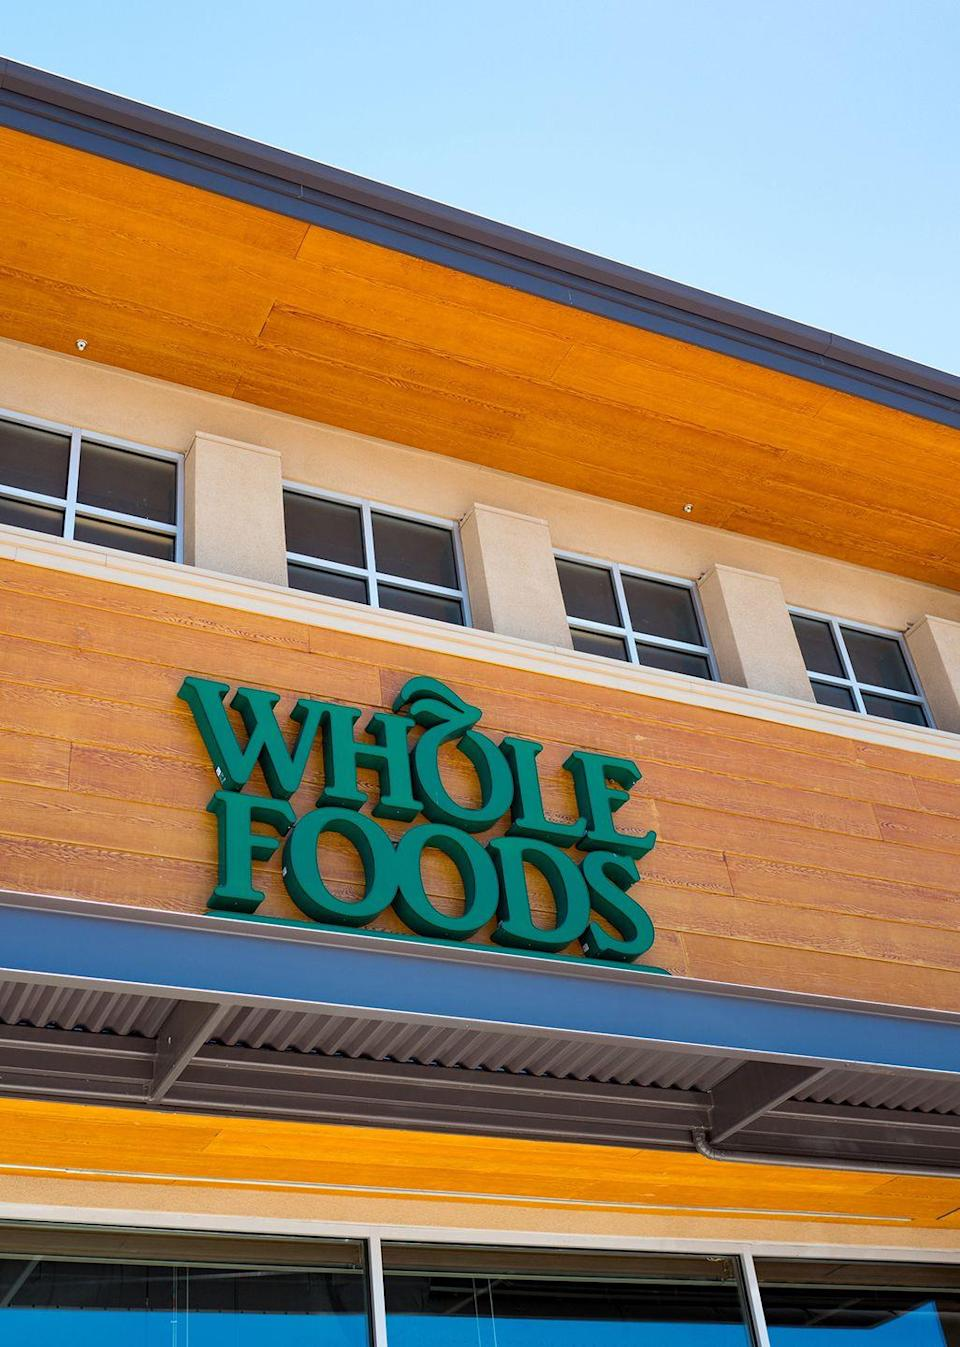 "<p><a href=""https://www.wholefoodsmarket.com/"" rel=""nofollow noopener"" target=""_blank"" data-ylk=""slk:Whole Foods"" class=""link rapid-noclick-resp"">Whole Foods</a> will be open at 7 a.m. as usual, but don't expect the stores to be open past 2 p.m. since most close early on Thanksgiving.</p>"